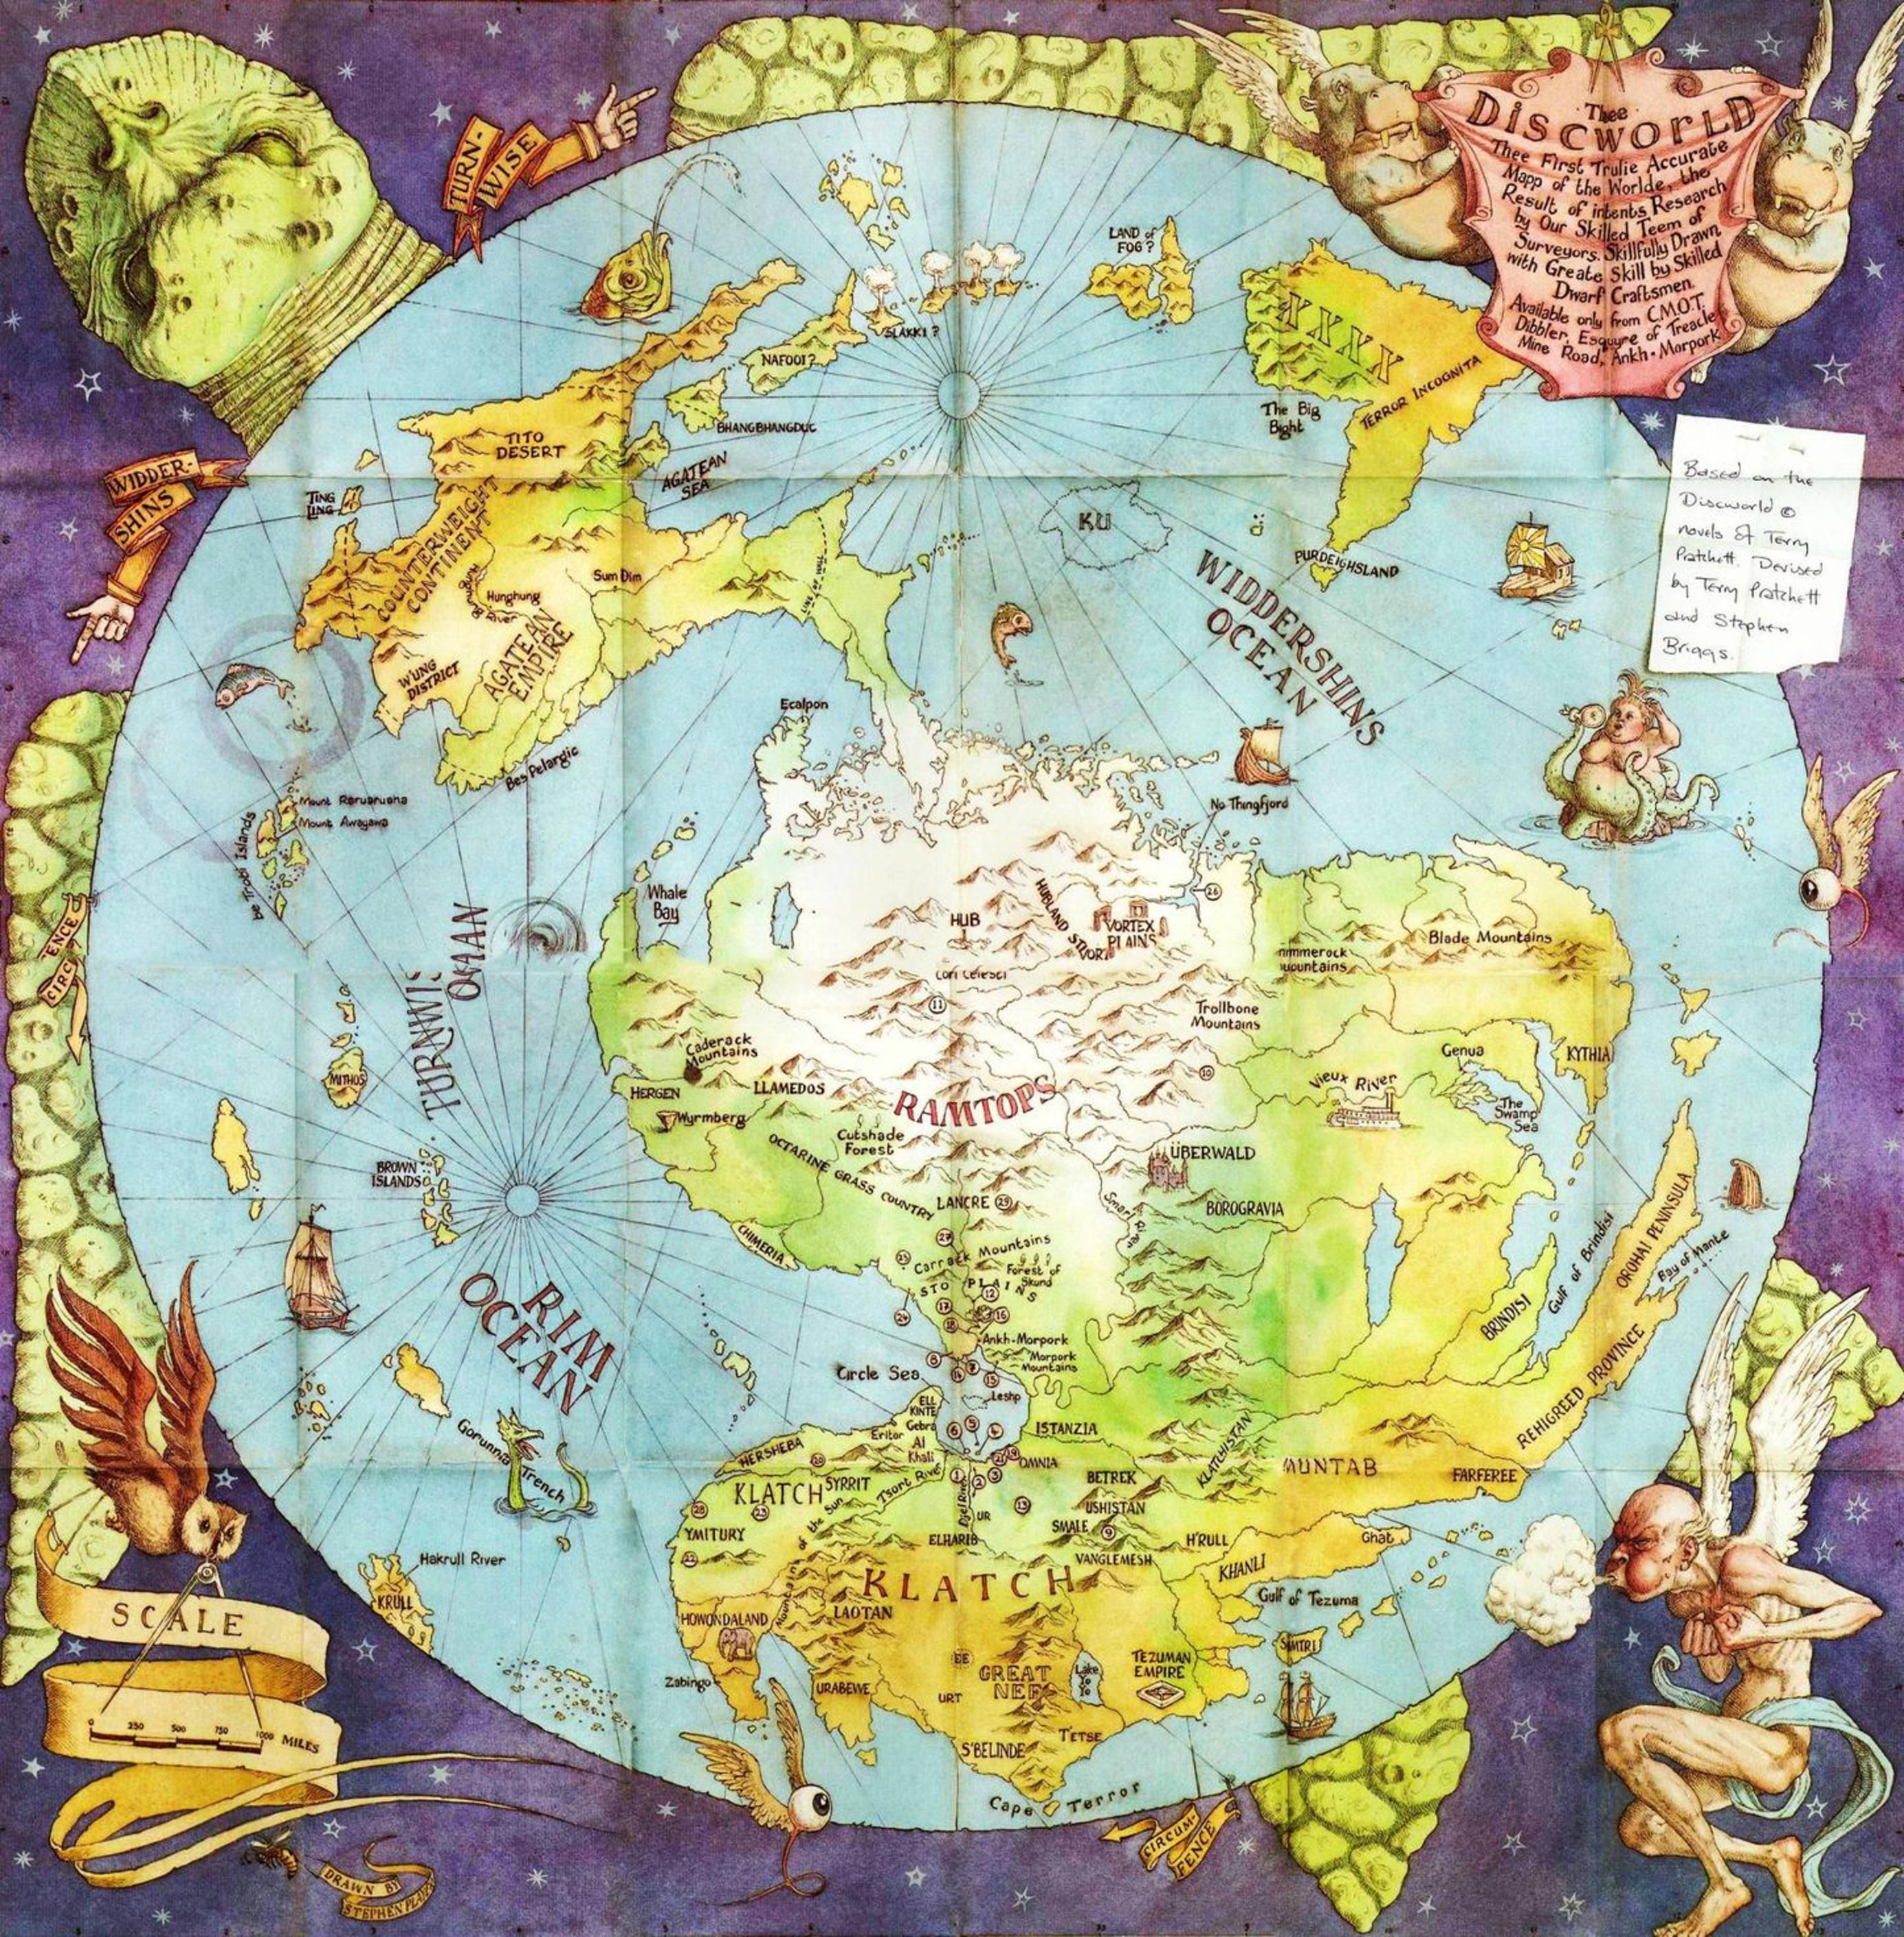 Discworld Mapp | I really love the amount of character this map